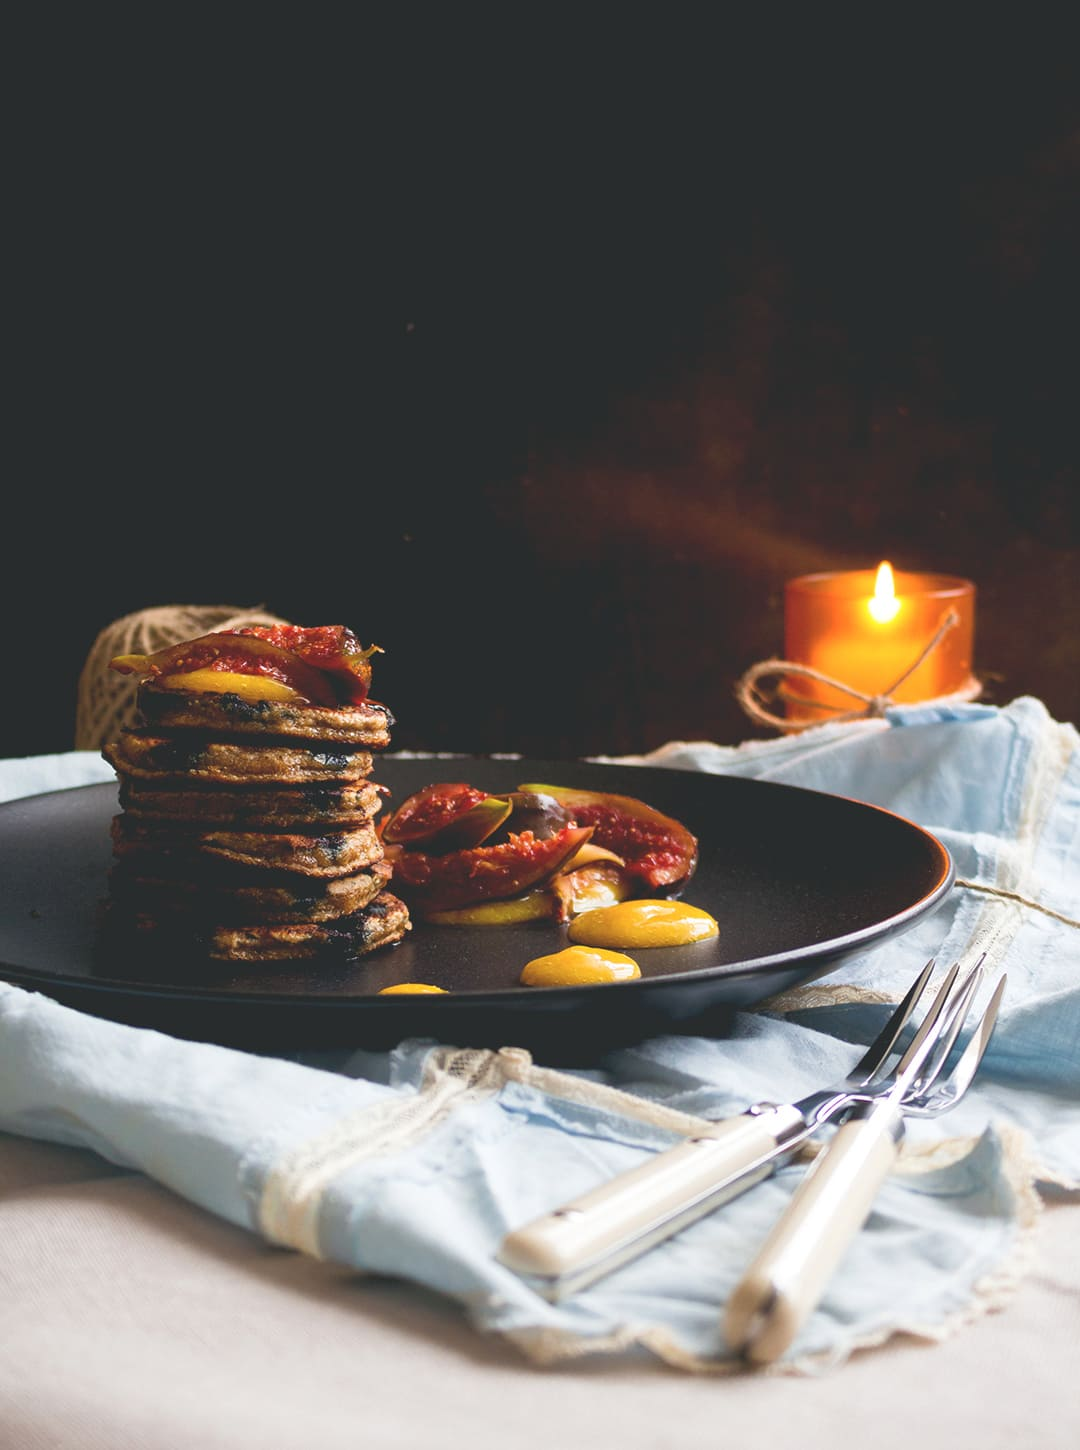 Blueberry Vanilla Pancakes with Caramelized Figs and Mango Sauce - delicious healthy breakfast. I love these! They taste amazing, look fancy, but are really easy to make! Gluten free & dairy free!   thehealthfulideas.com